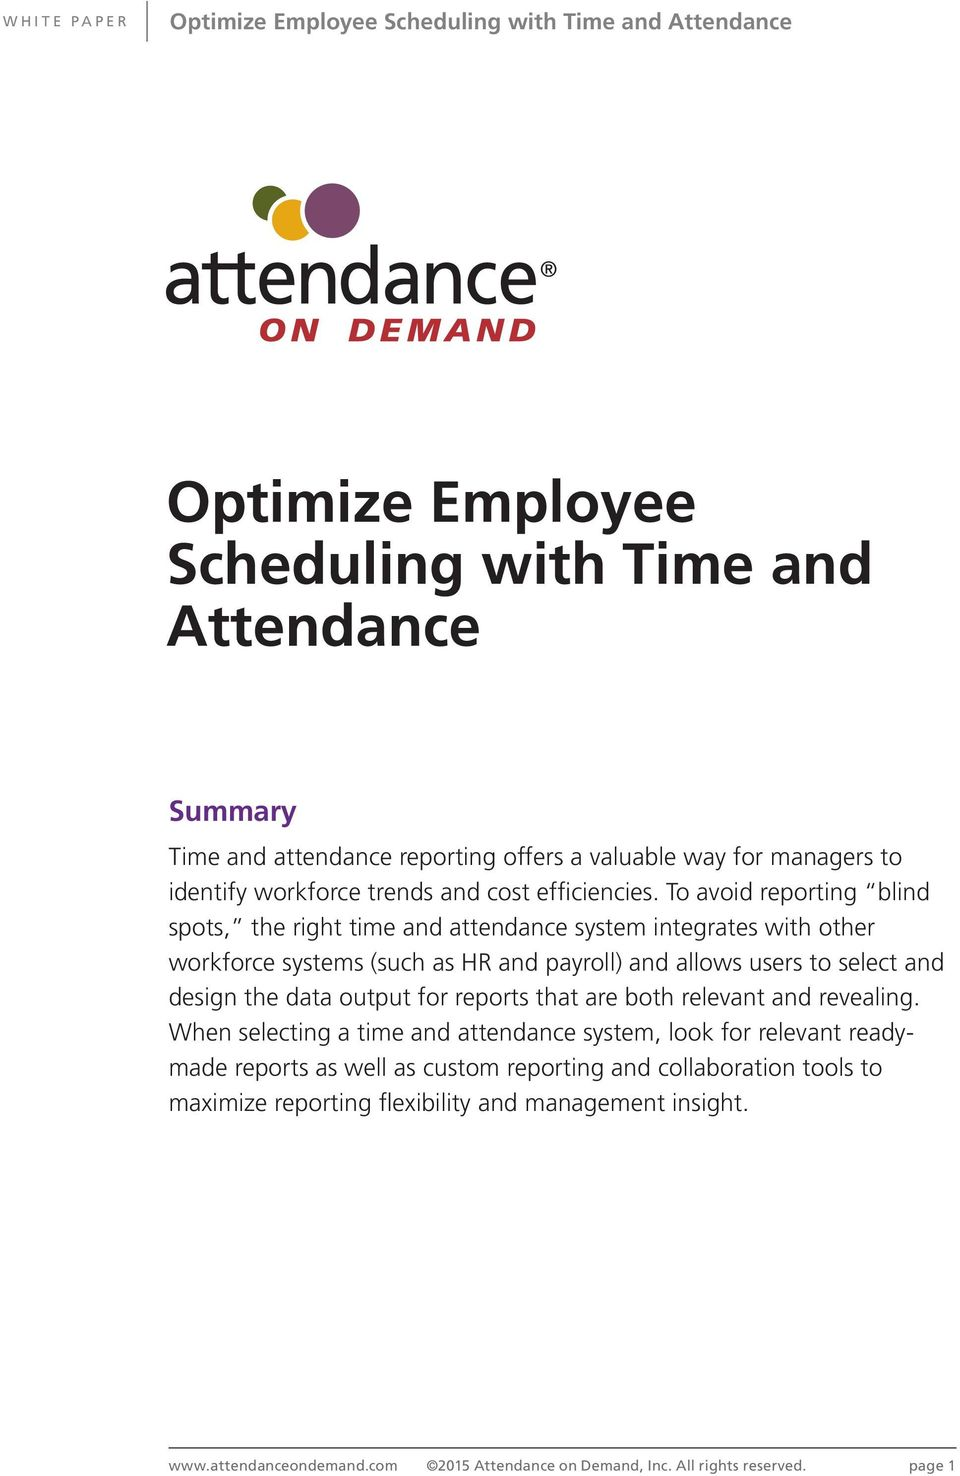 To avoid reporting blind spots, the right time and attendance system integrates with other workforce systems (such as HR and payroll) and allows users to select and design